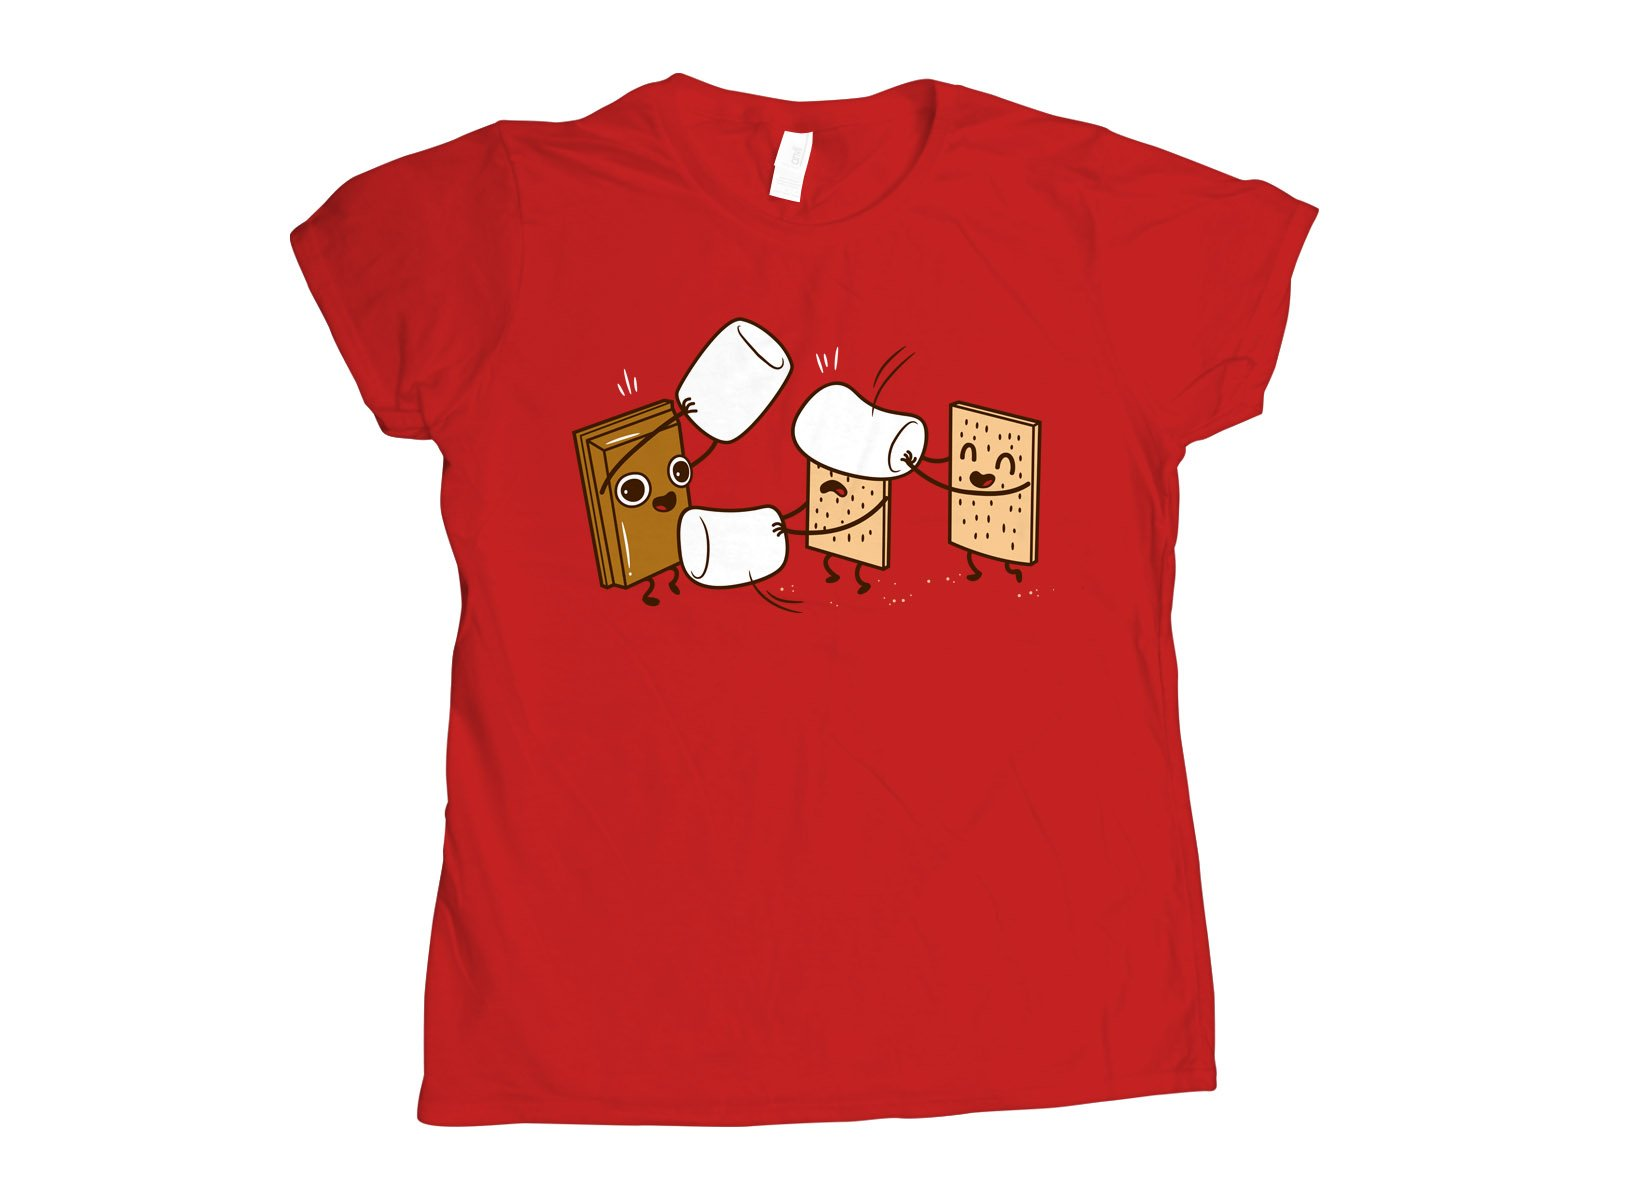 How S'mores Are Made on Womens T-Shirt